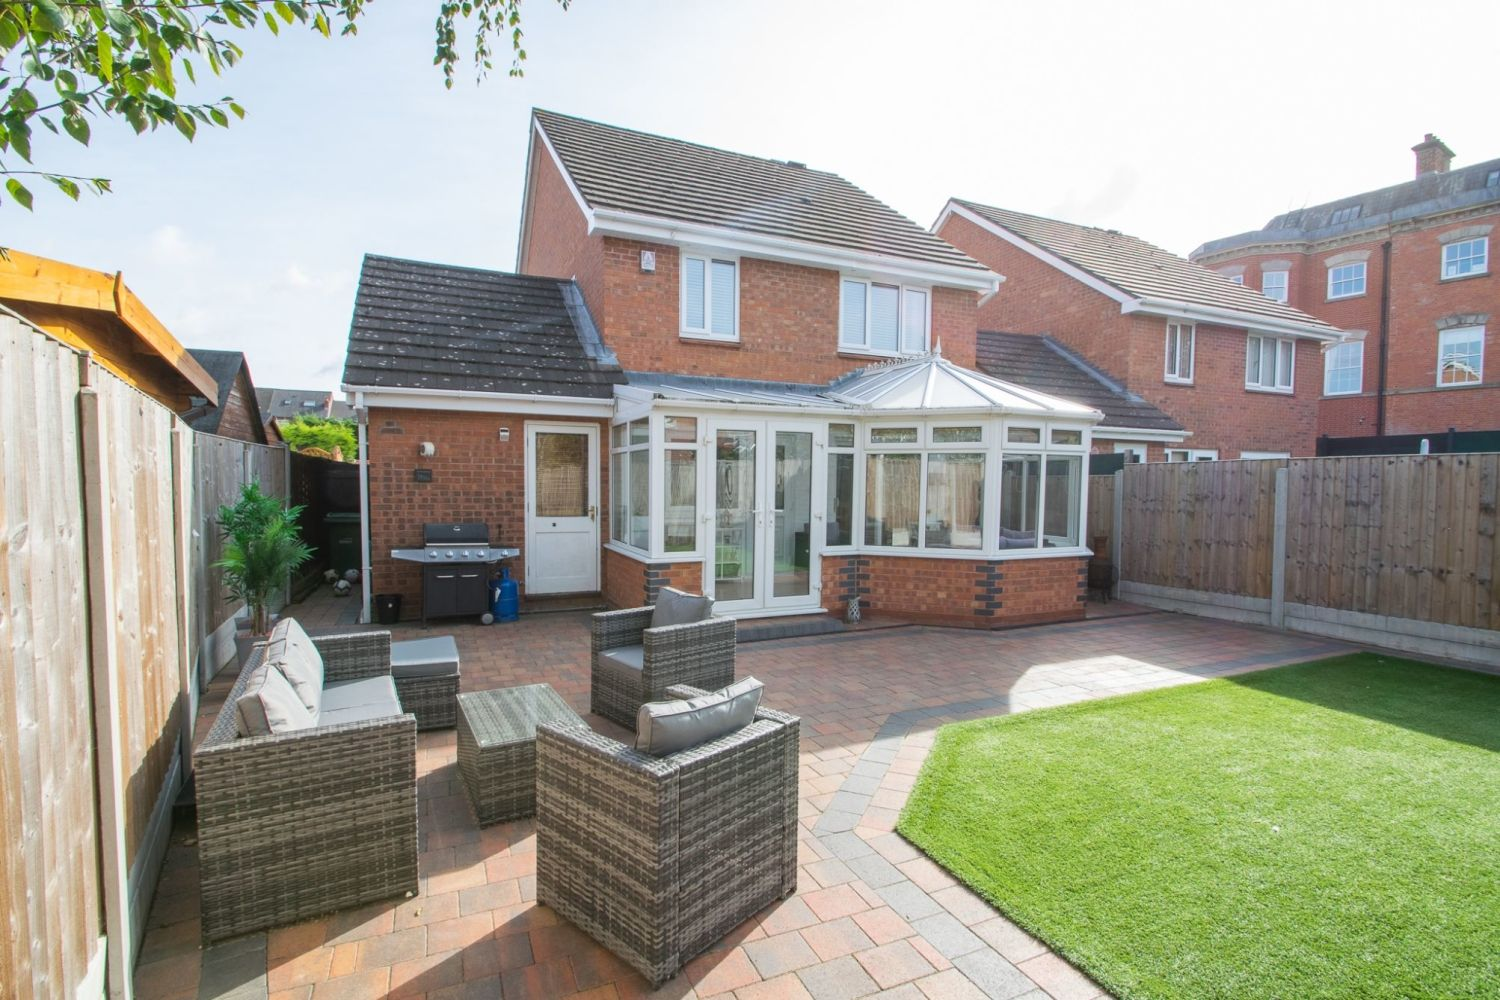 3 bed detached for sale in Batchelor Close, Amblecote 23